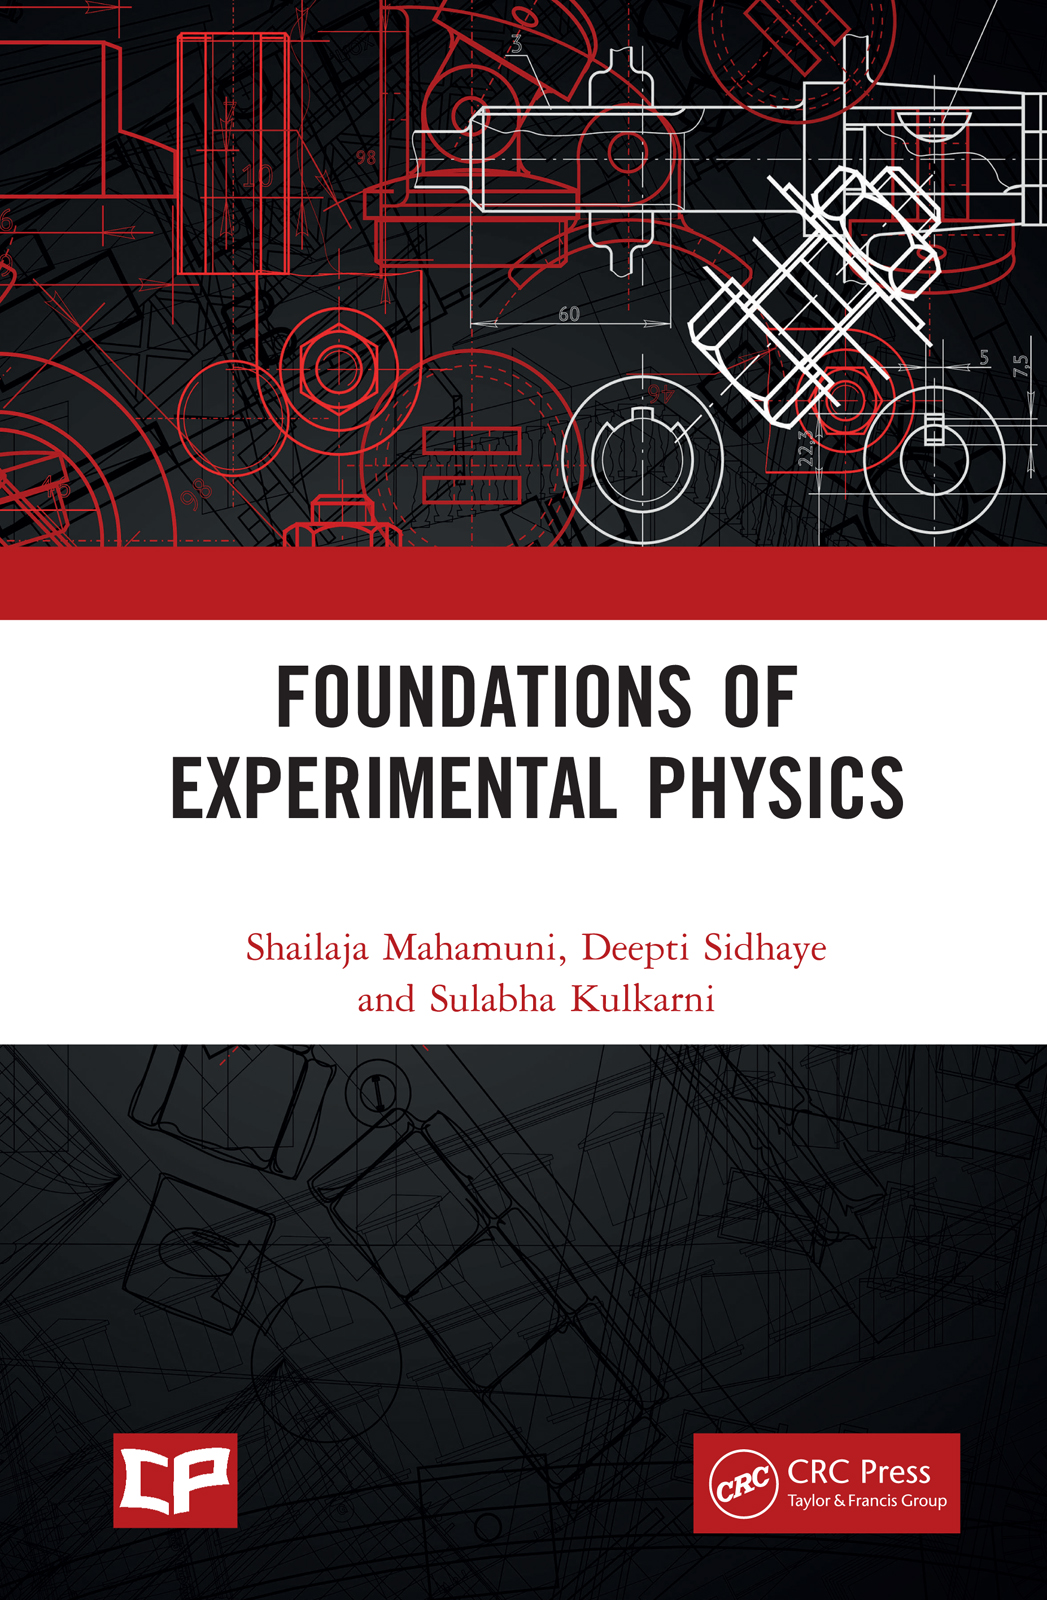 Foundations of Experimental Physics